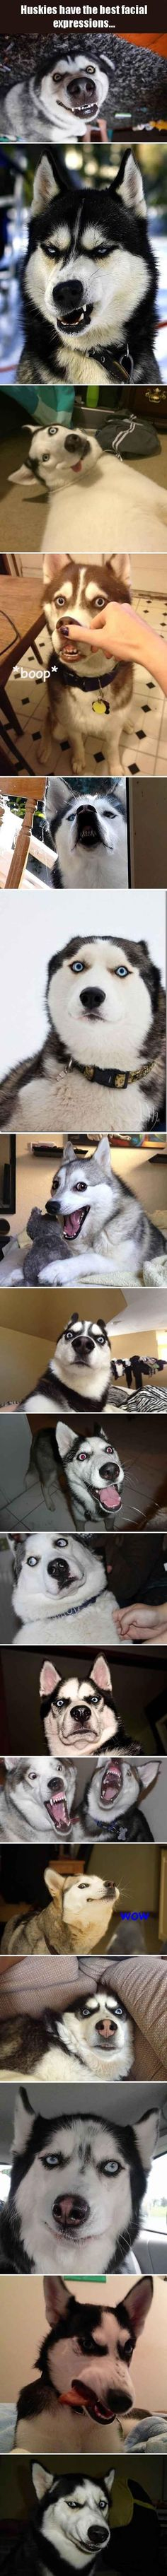 Huskies Have The Best Facial Expressions 17 Pics #siberianhusky